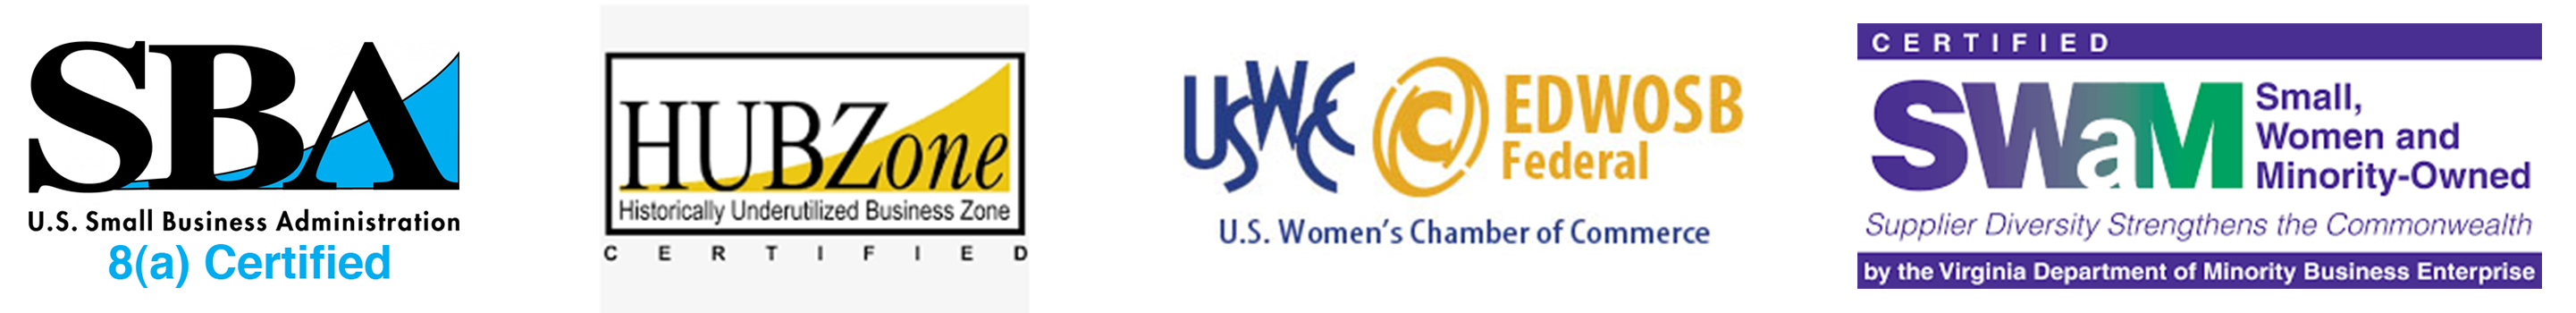 U.S Small Business Administration, HUBZone, USWCC, Small, Woman and Minority-Owned Logos